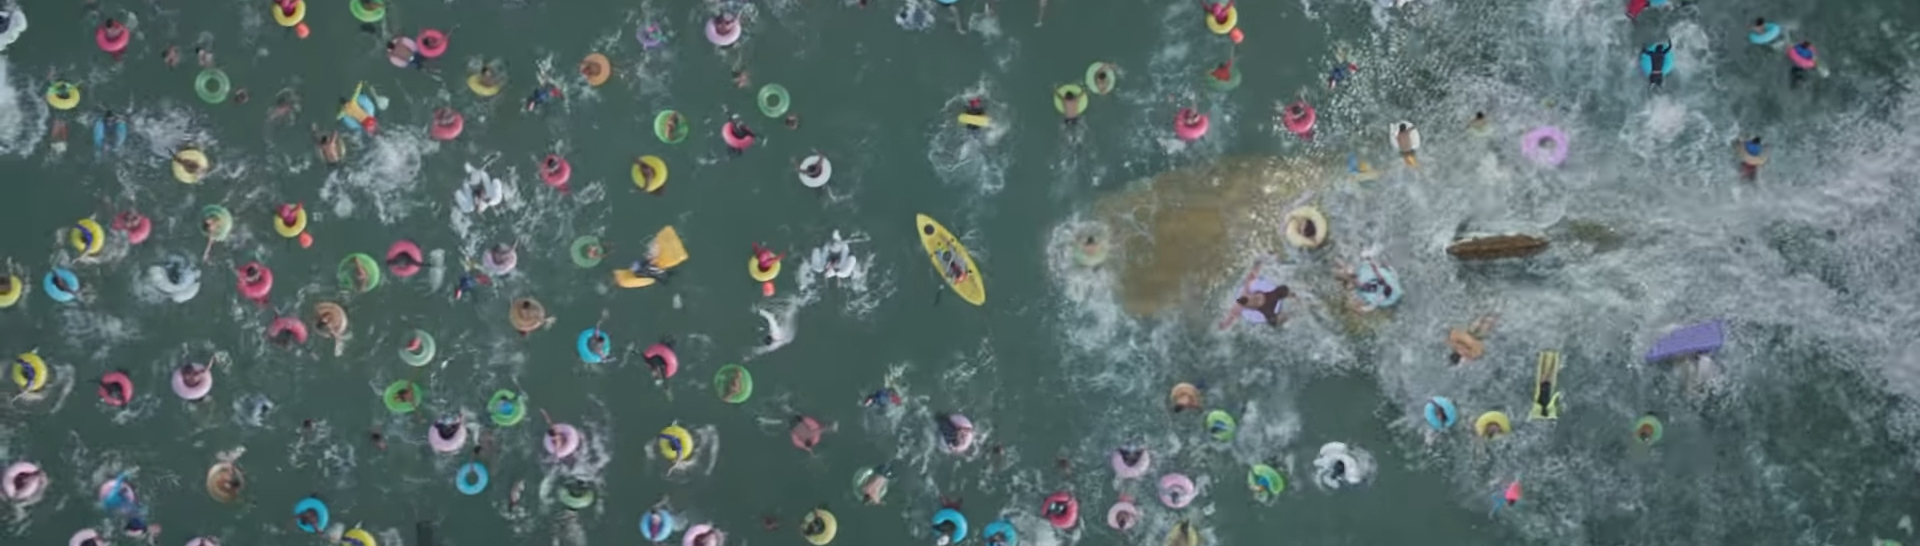 The Meg. Image Credit: Warner Bros. Pictures.